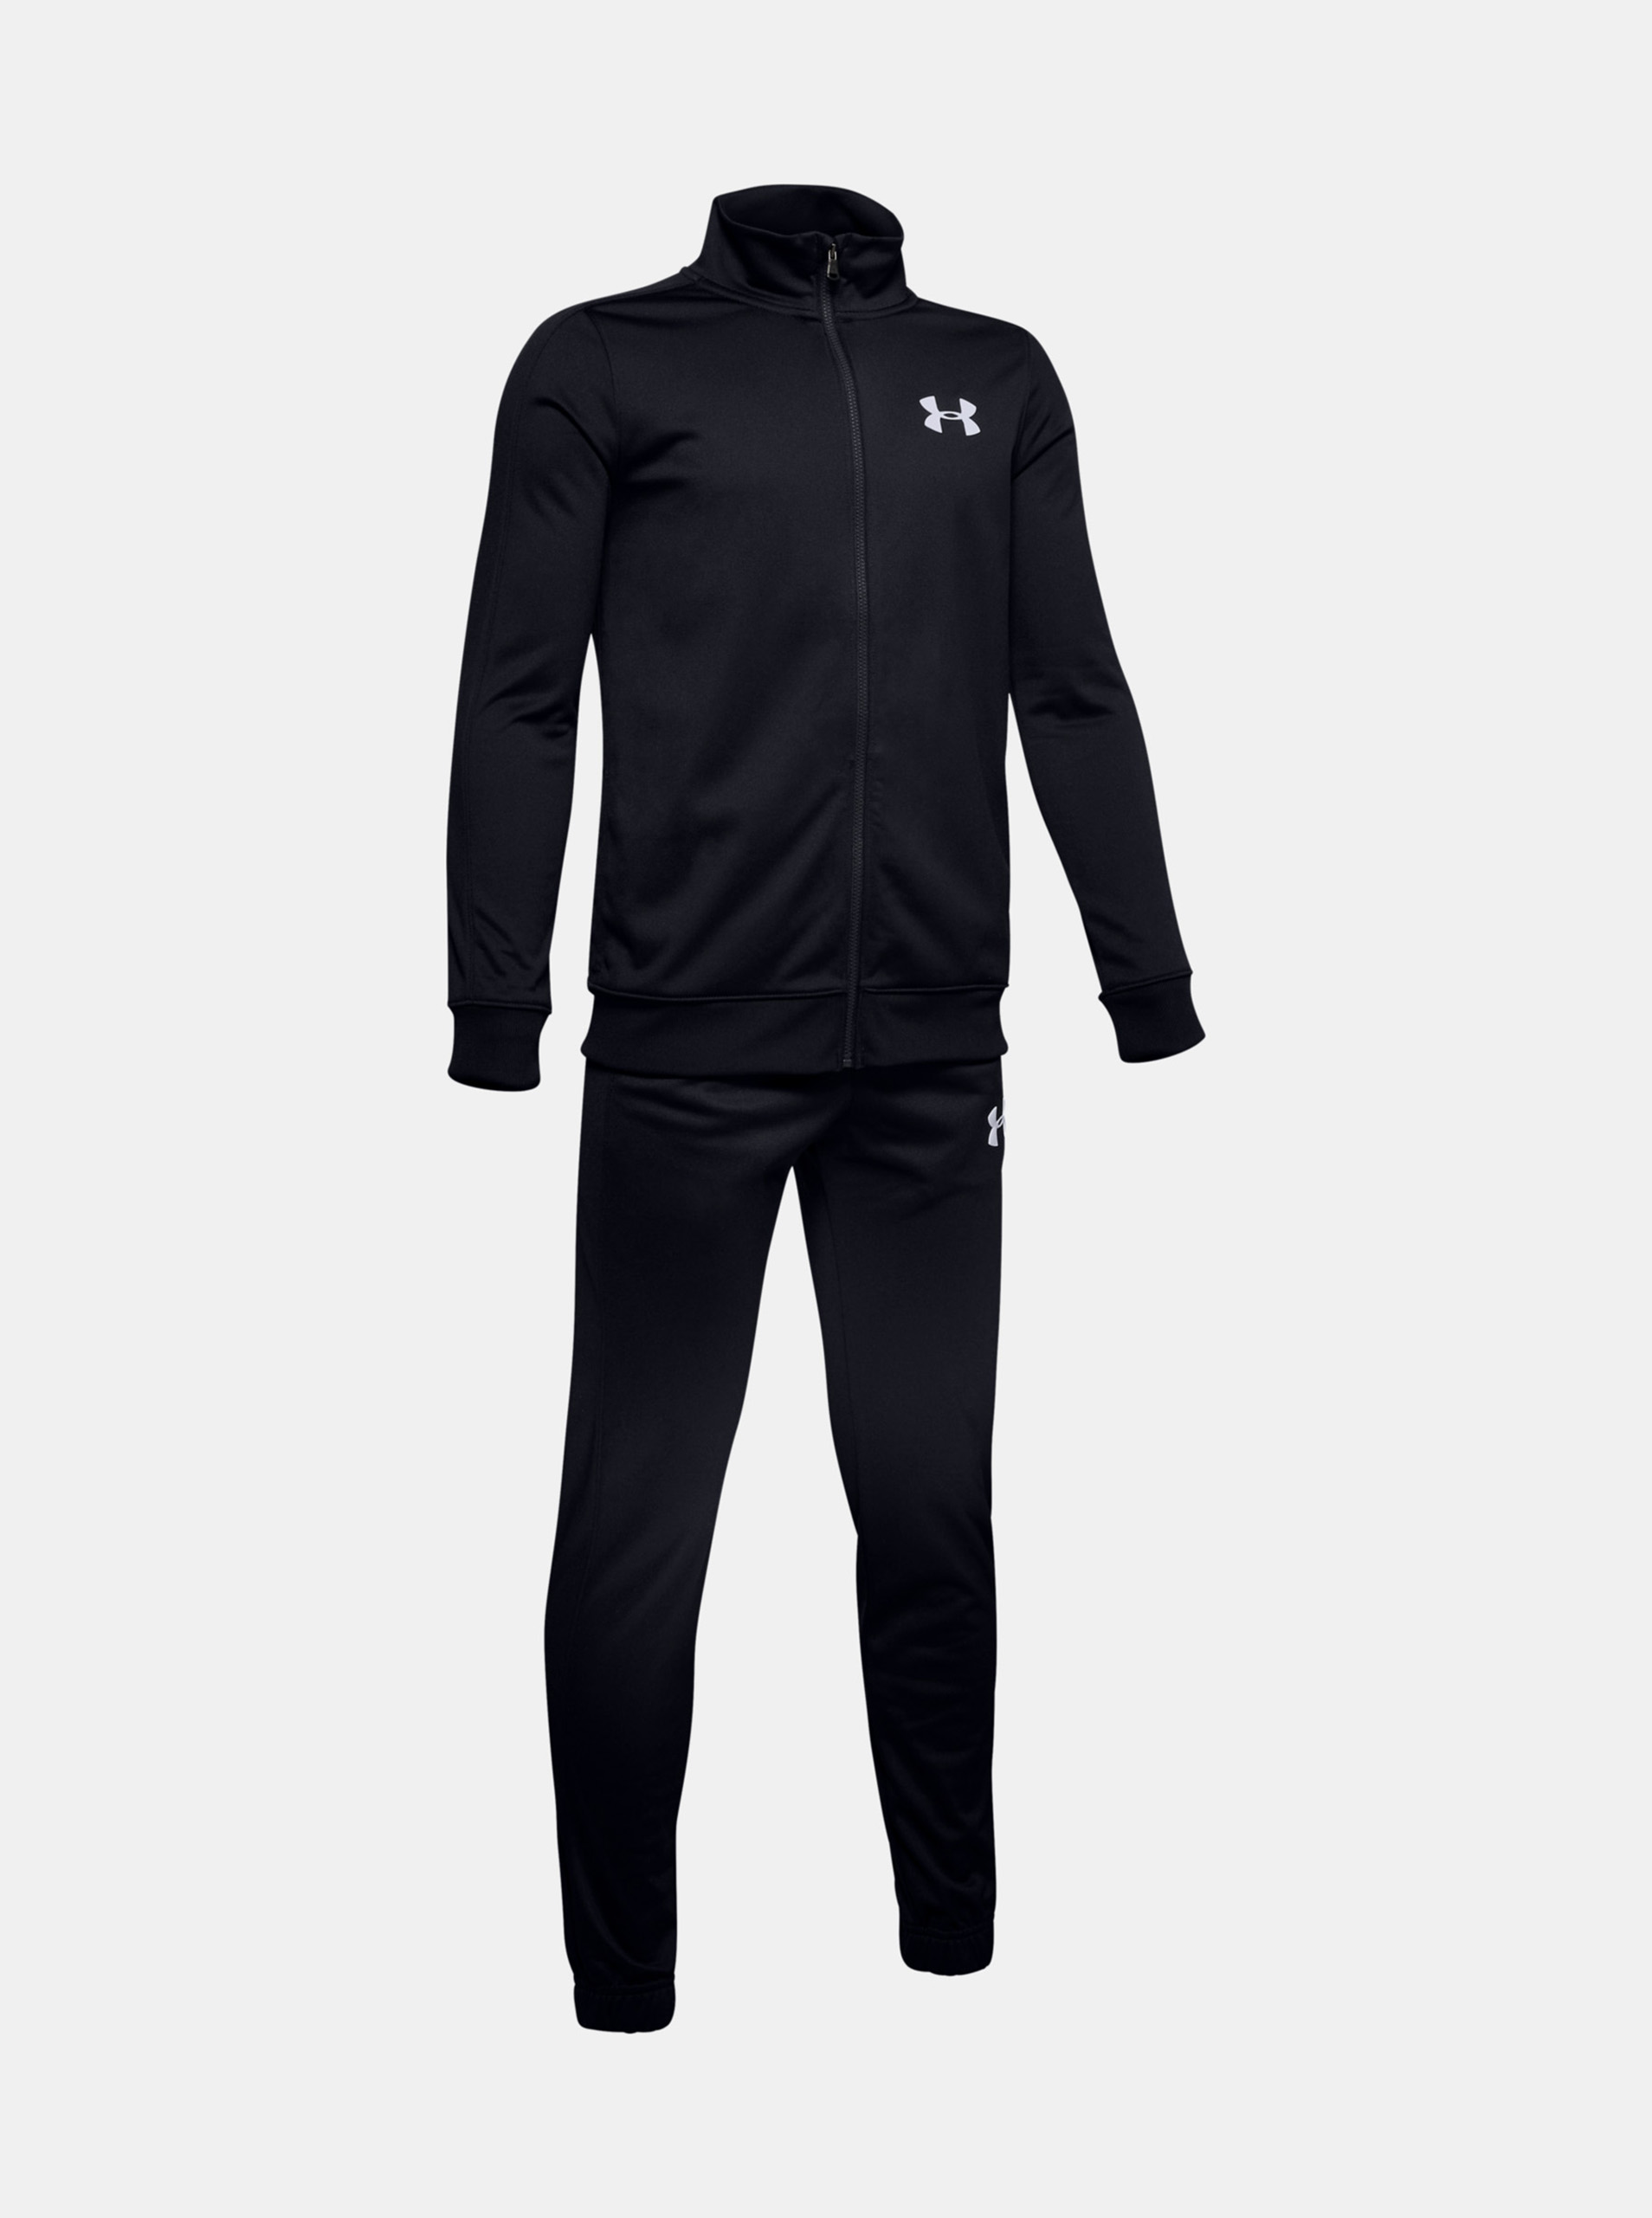 Details about  /Under Armour Tracksuit 1//4 Zip grey//black Long Sleeve Fitted Bnwt Small 69.99